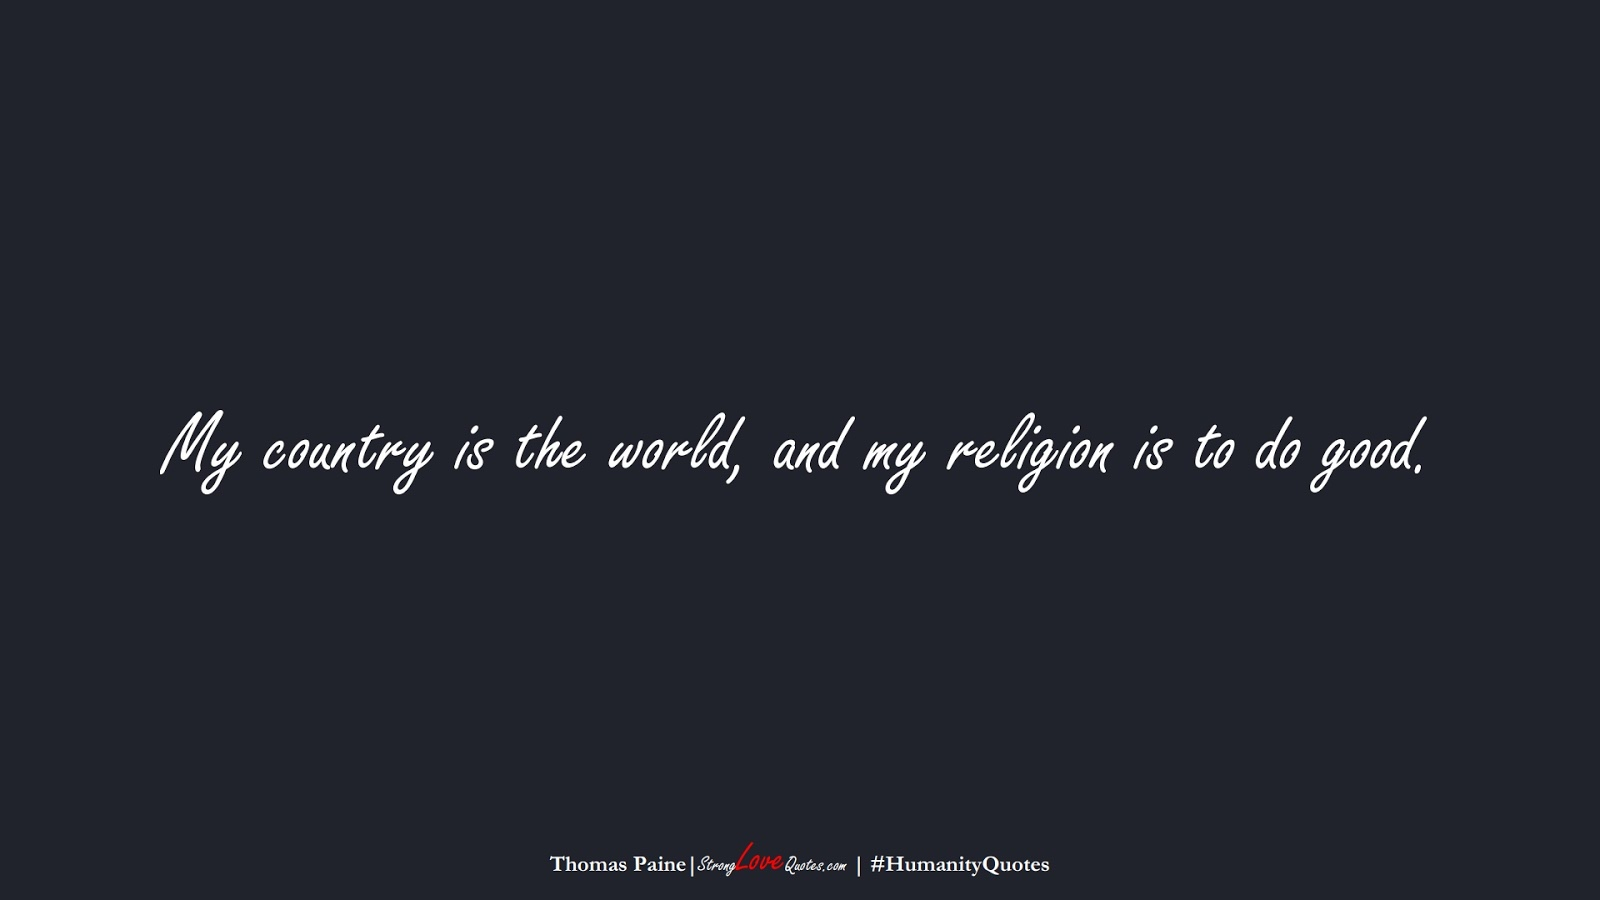 My country is the world, and my religion is to do good. (Thomas Paine);  #HumanityQuotes